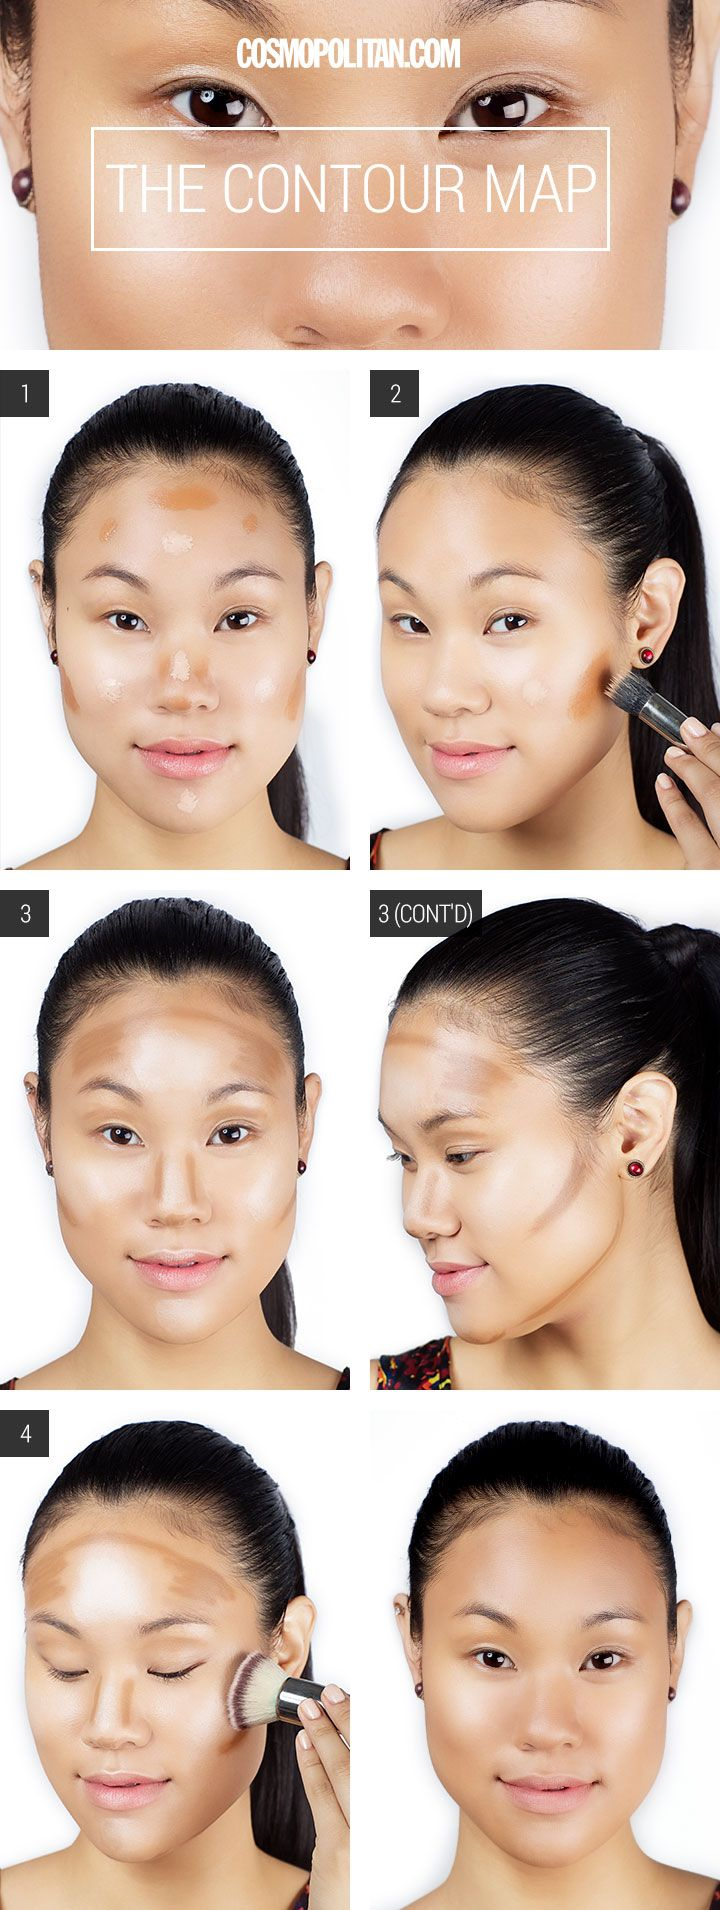 724 best contouring face images on pinterest make up looks makeup tutorial how to contour your face baditri Image collections